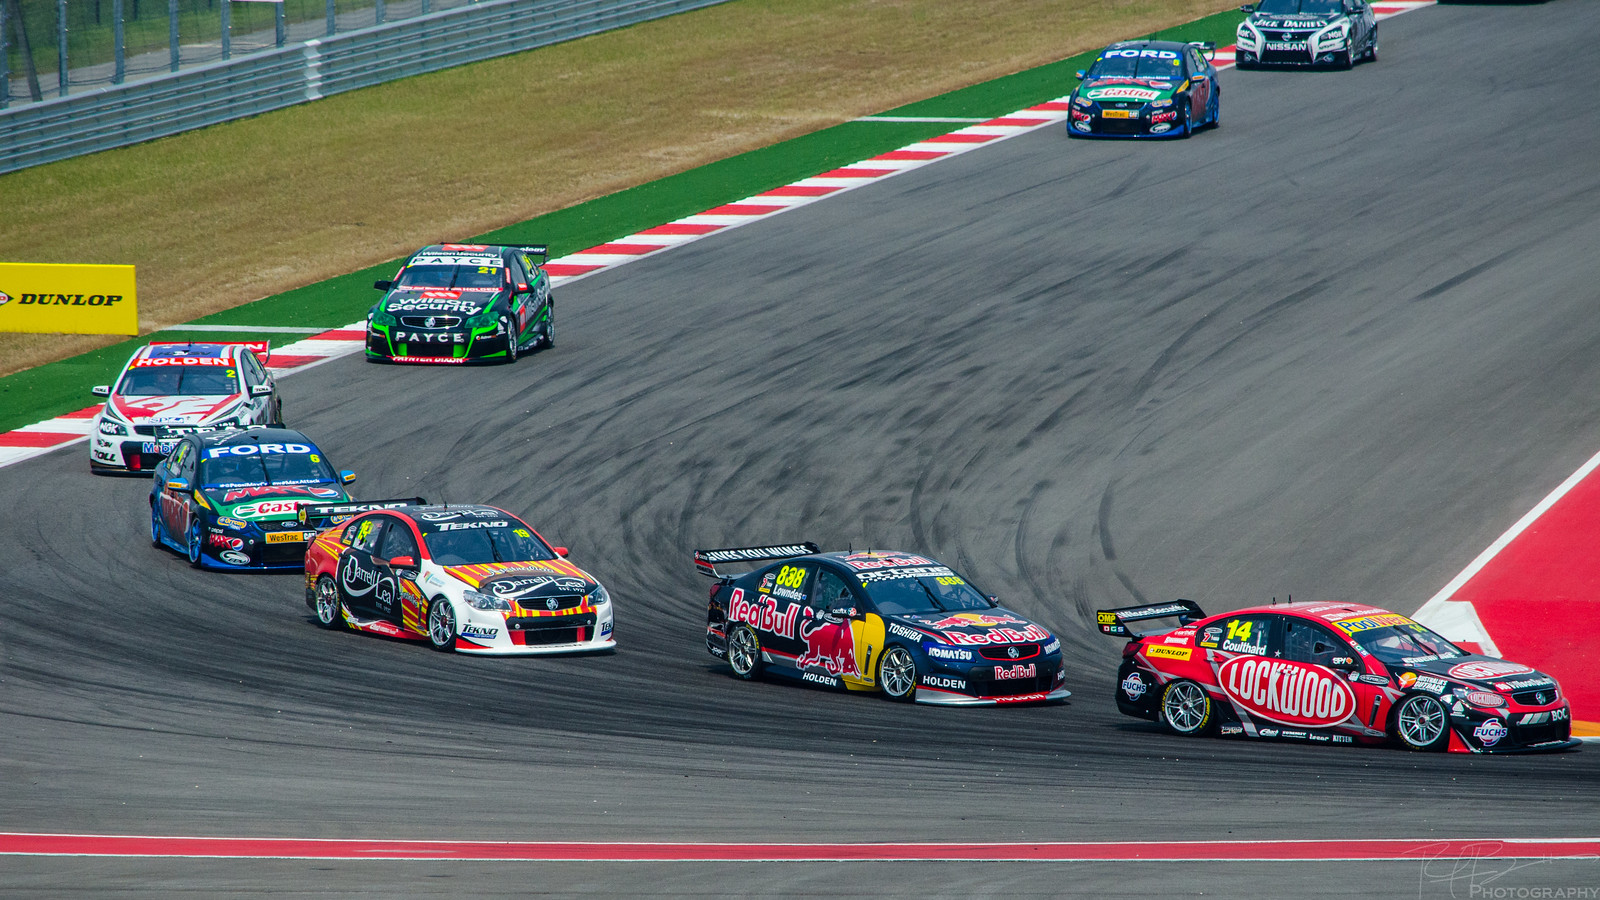 The Pack led by Craig Lowndes and Fabian Coulthard entering Turn 12